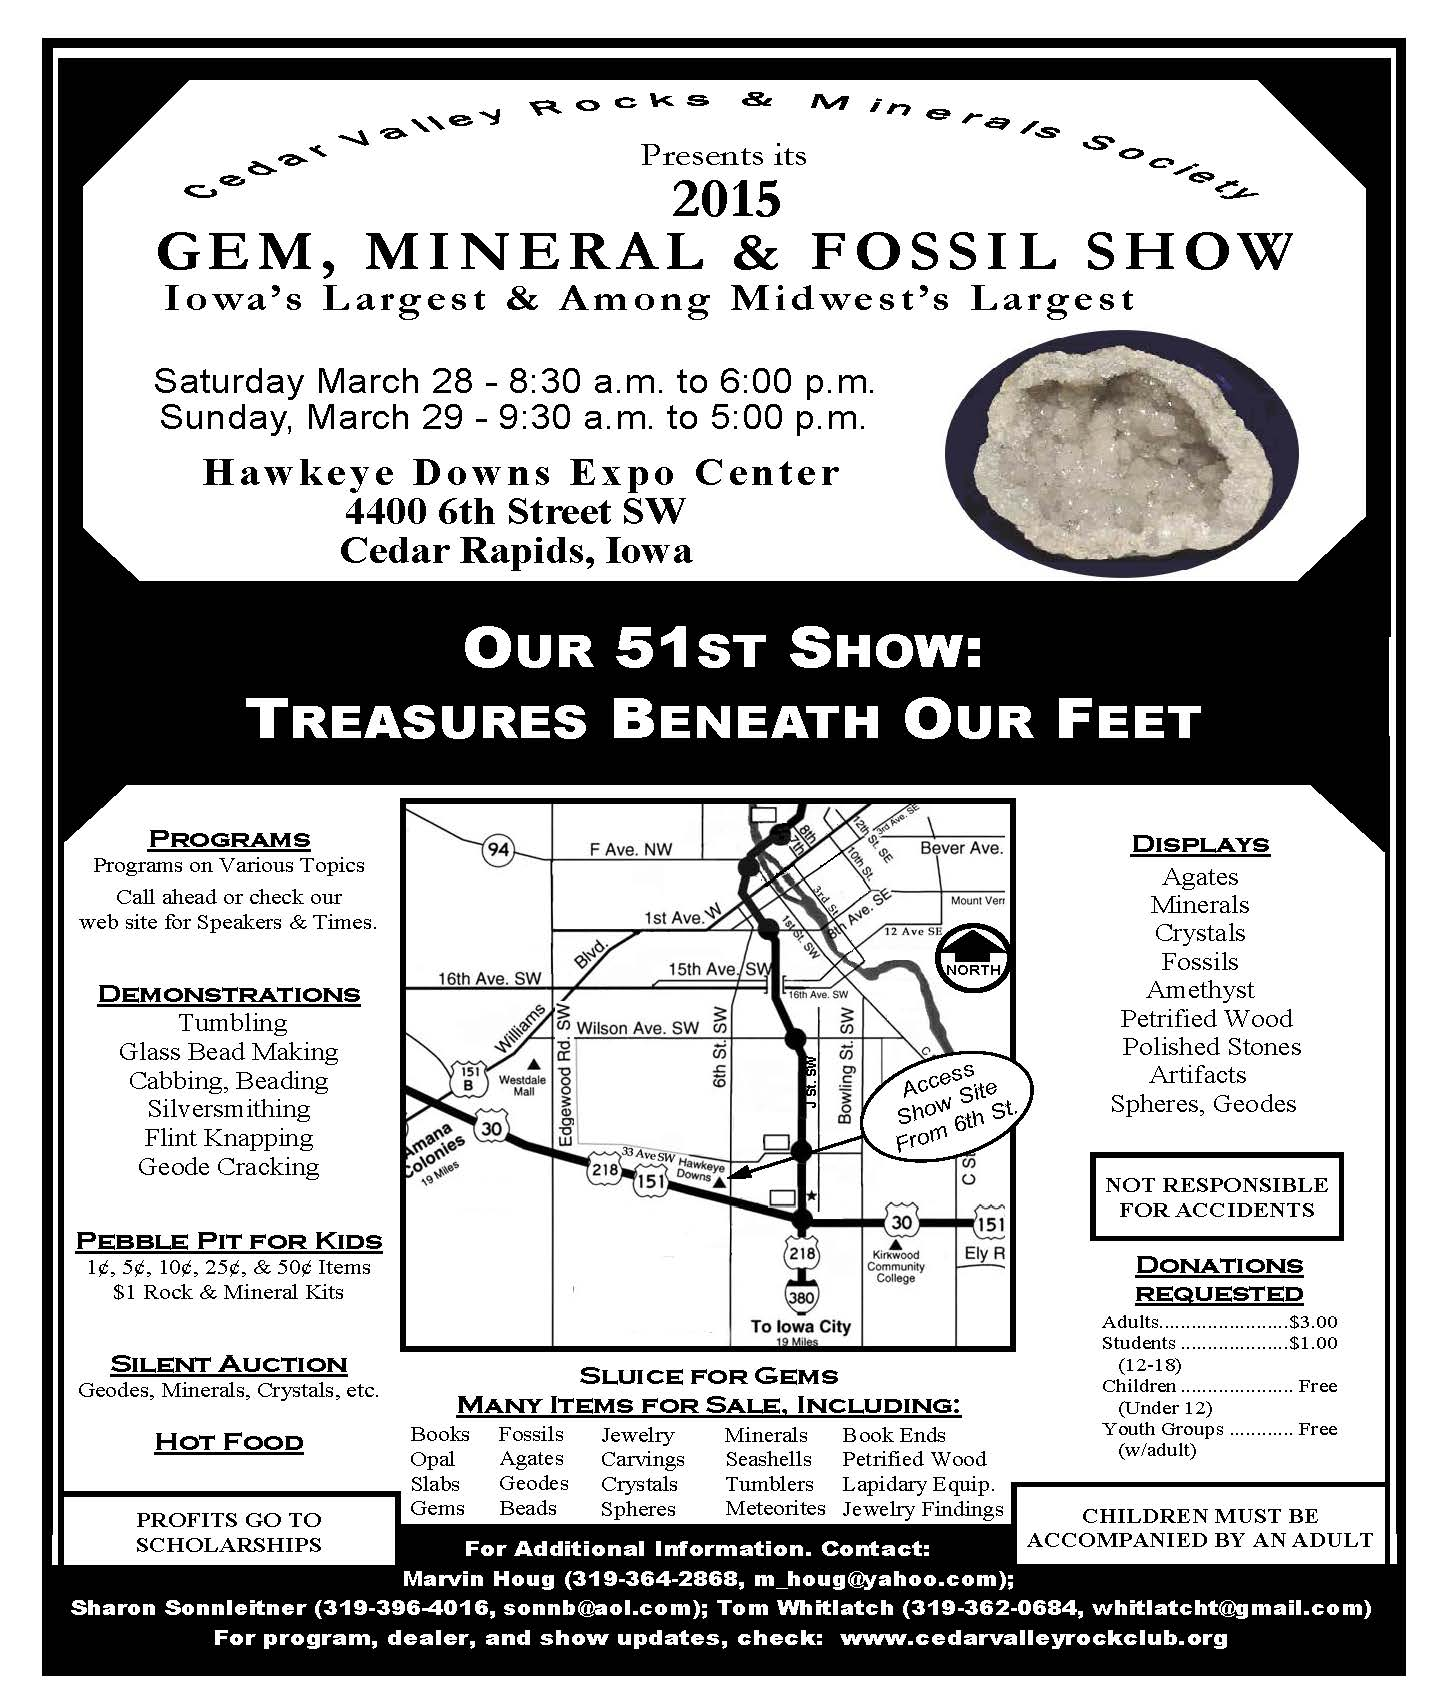 Flyer for the Gem, Mineral & Fossil Show.